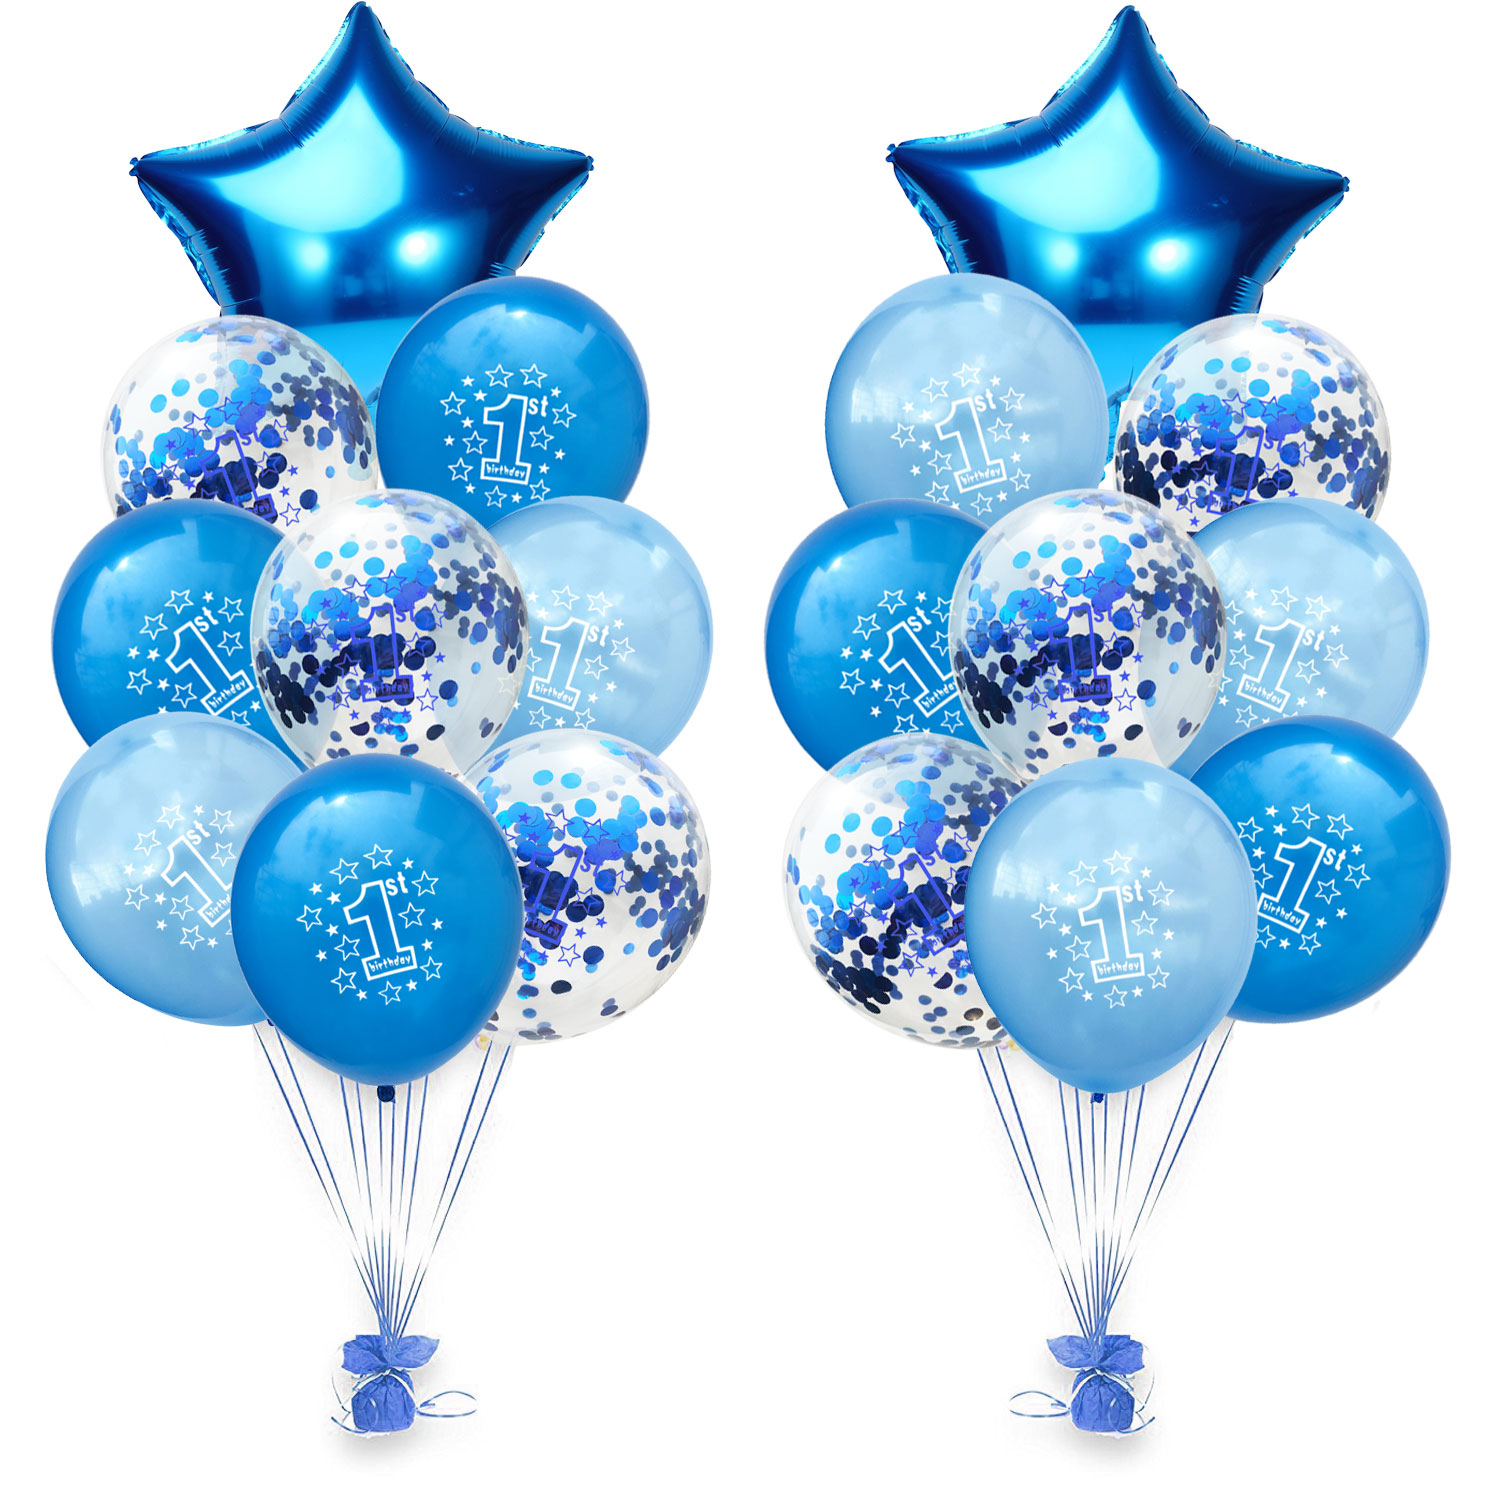 10 Pcs Baby First Birthday Balloon Confetti Balloon for Party Decoration